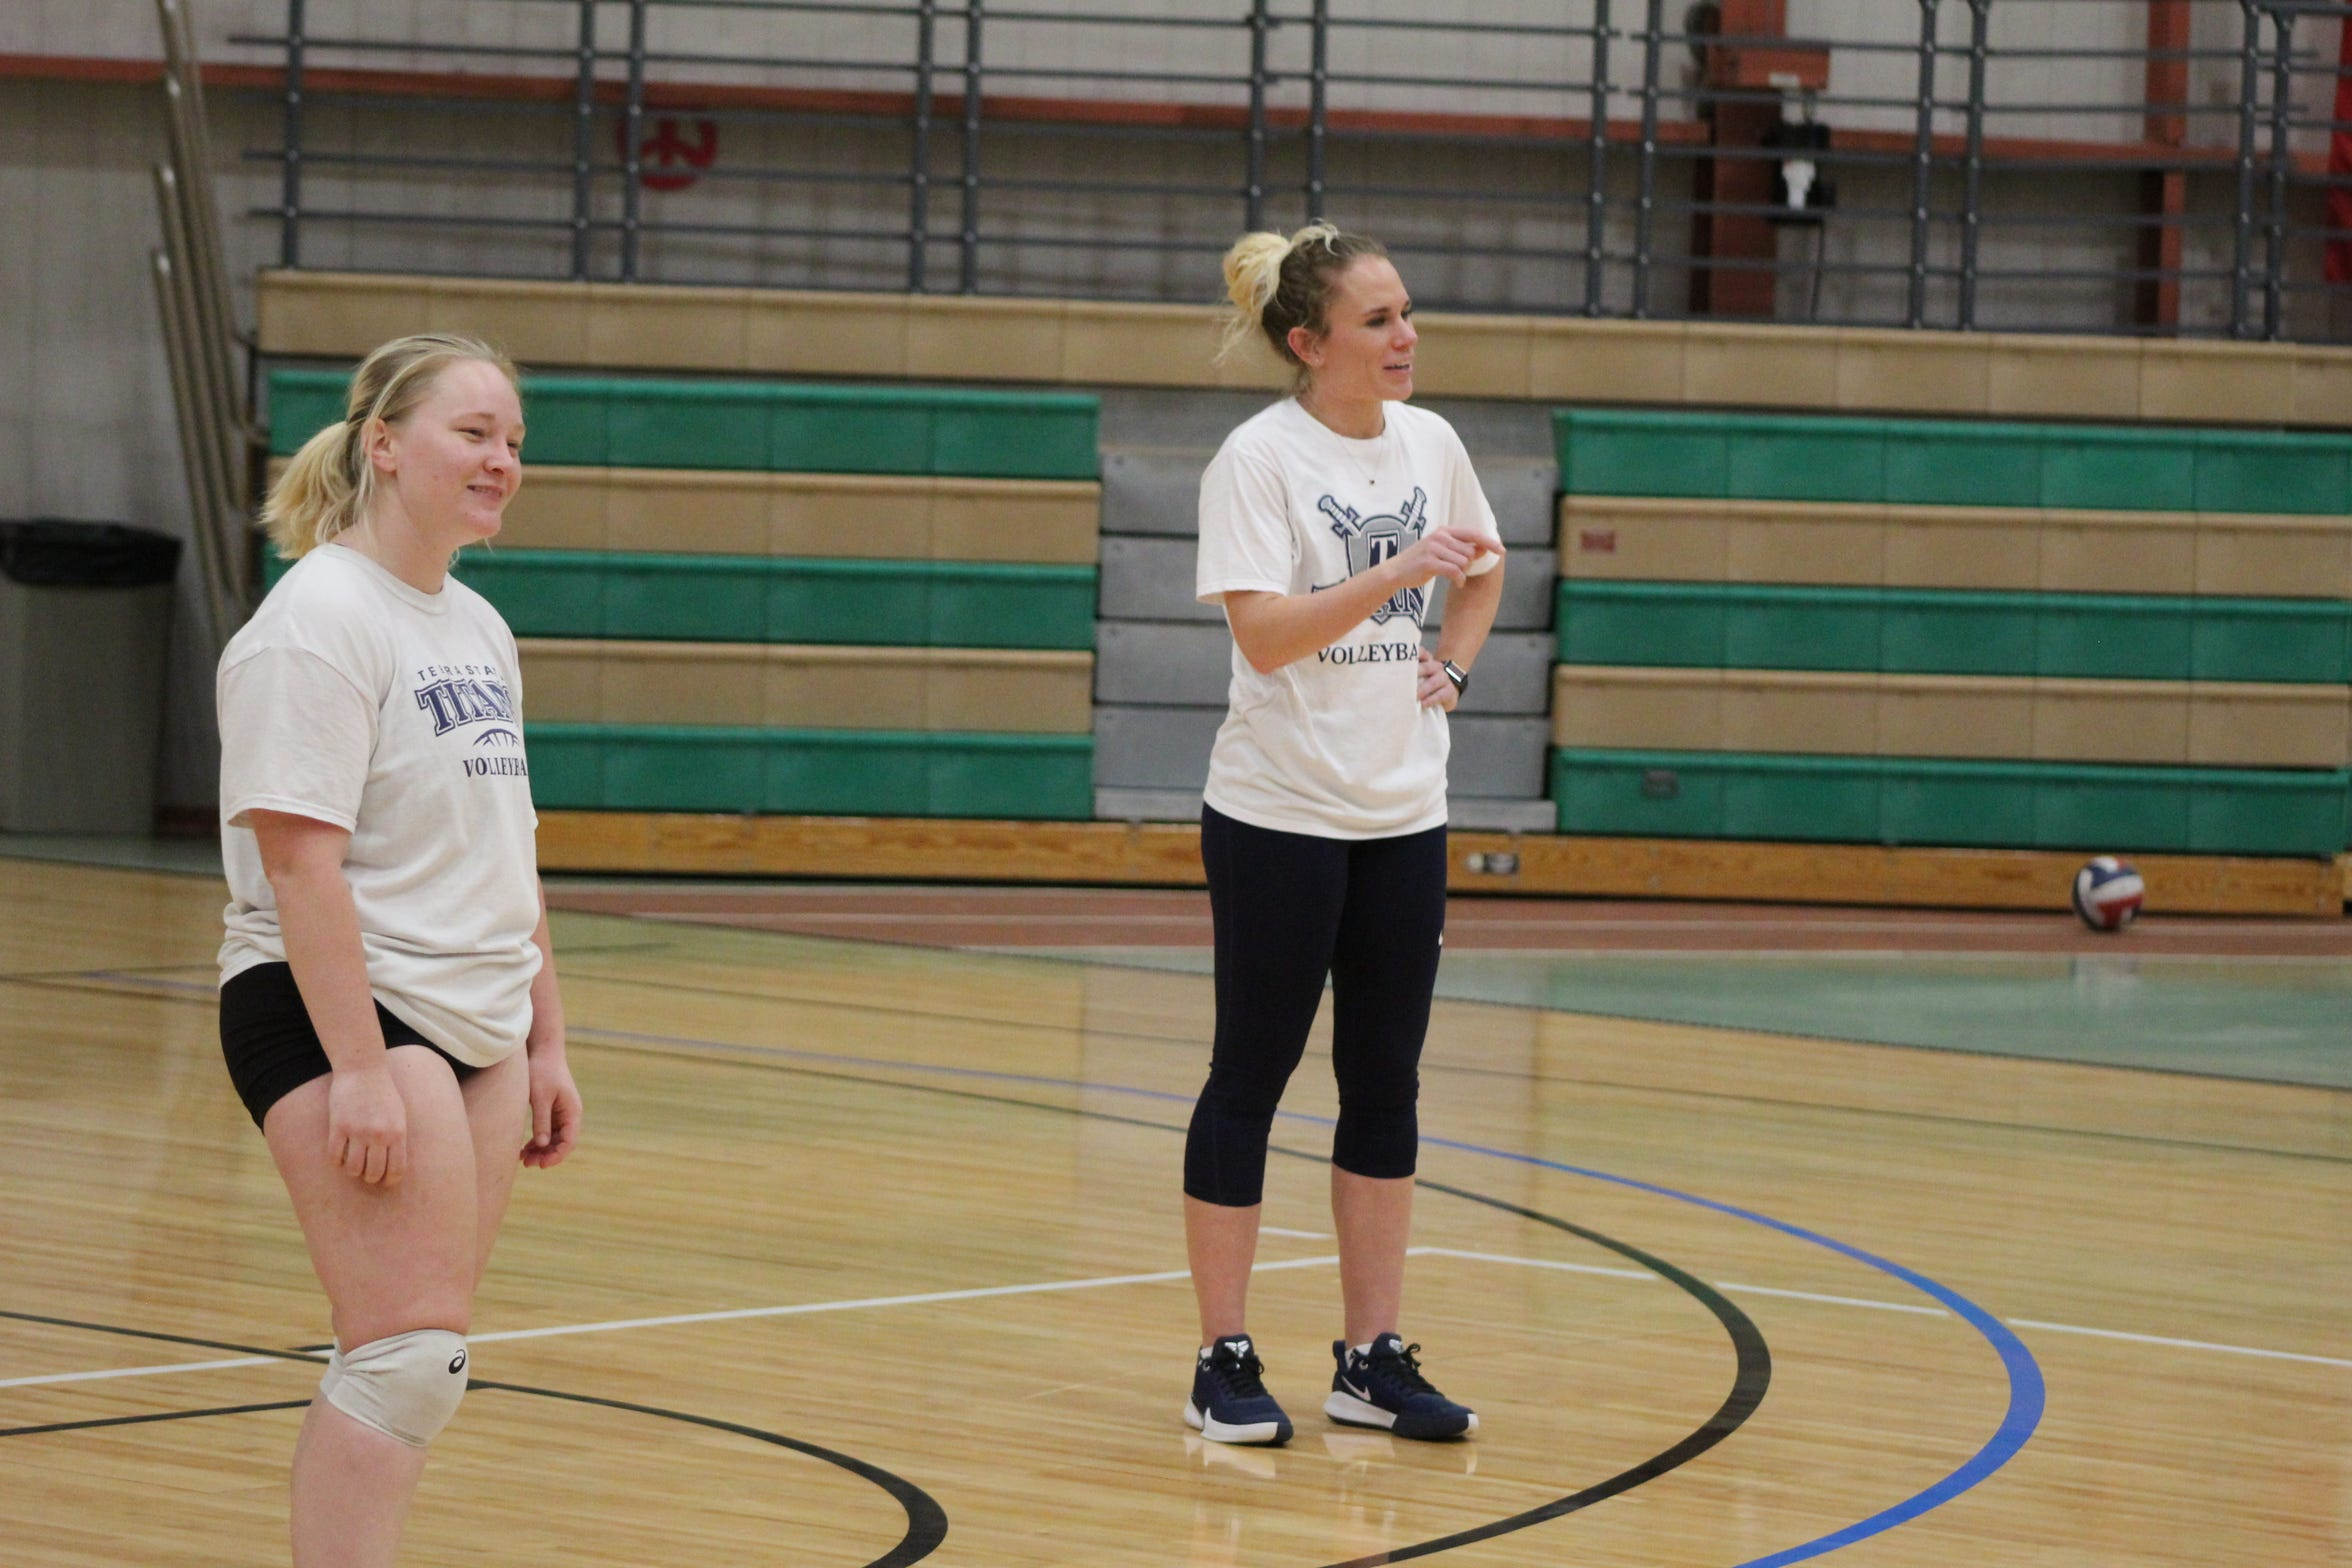 Terra State Volleyball Head Coach Stephanie Champine, pictured center, talks to players as freshman Megan Evans waits to return a serve during an Oct. 18 practice at the college's Student Activities Center.